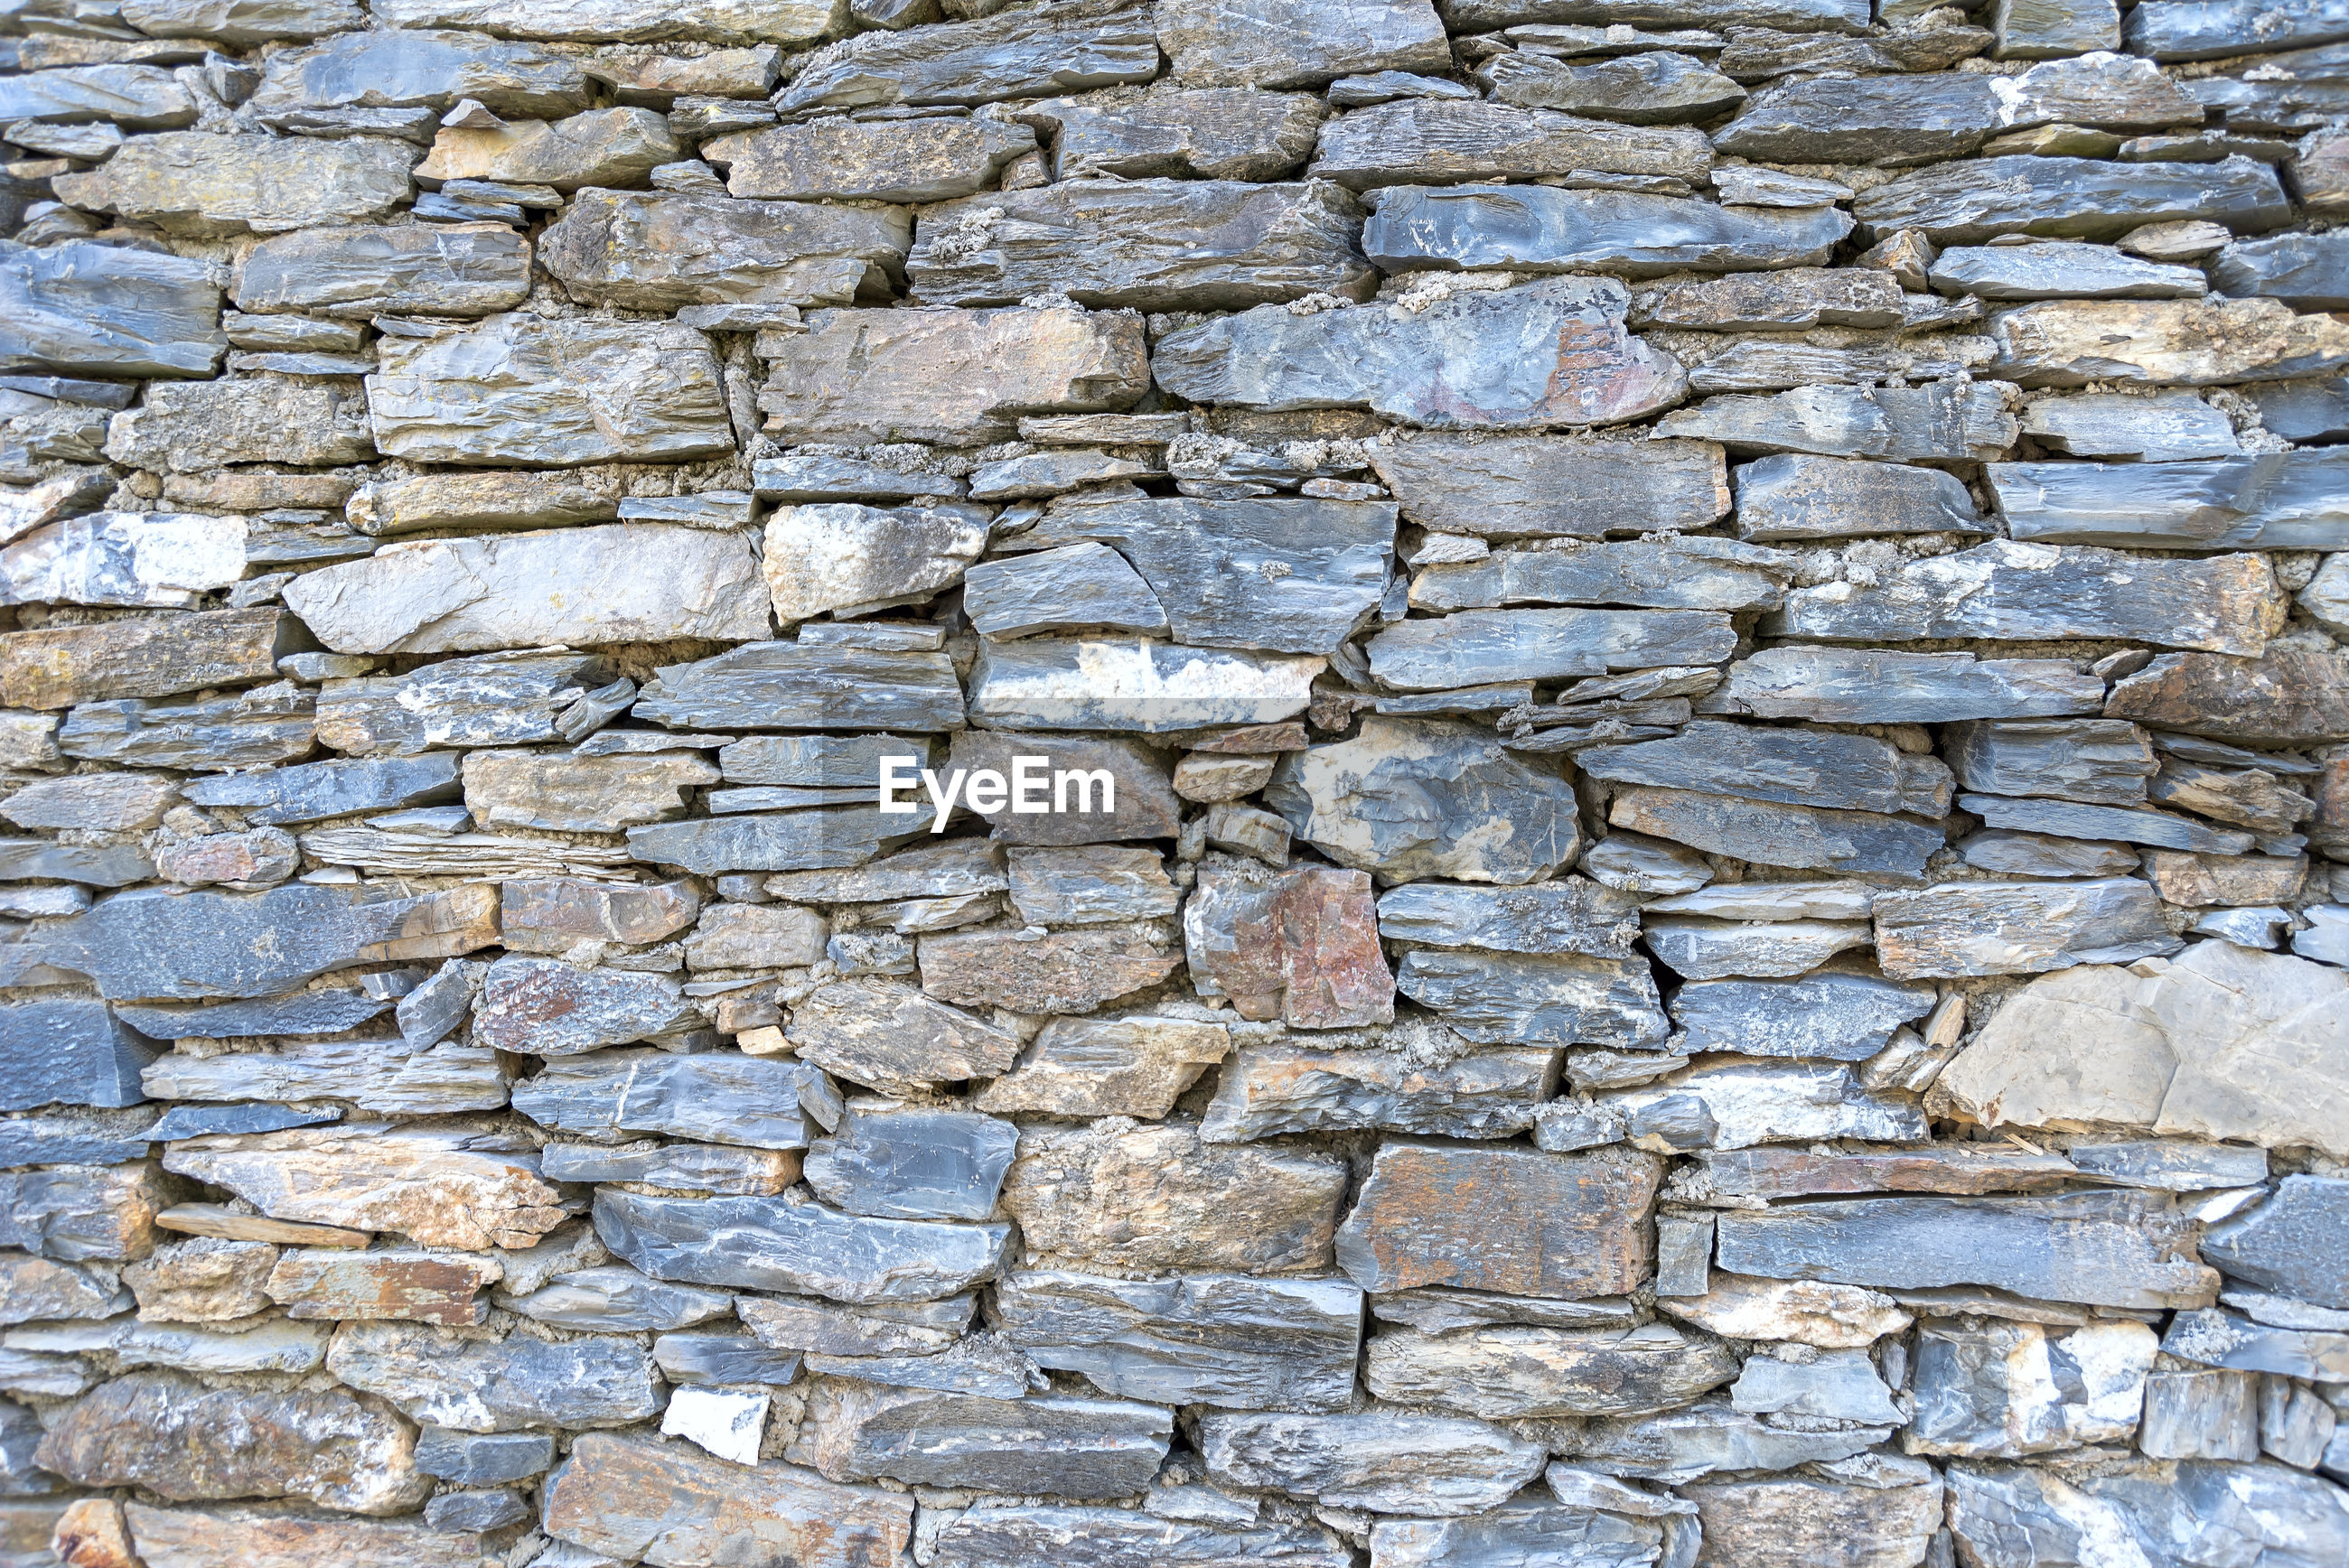 FULL FRAME SHOT OF STONE WALL WITH ROCKS